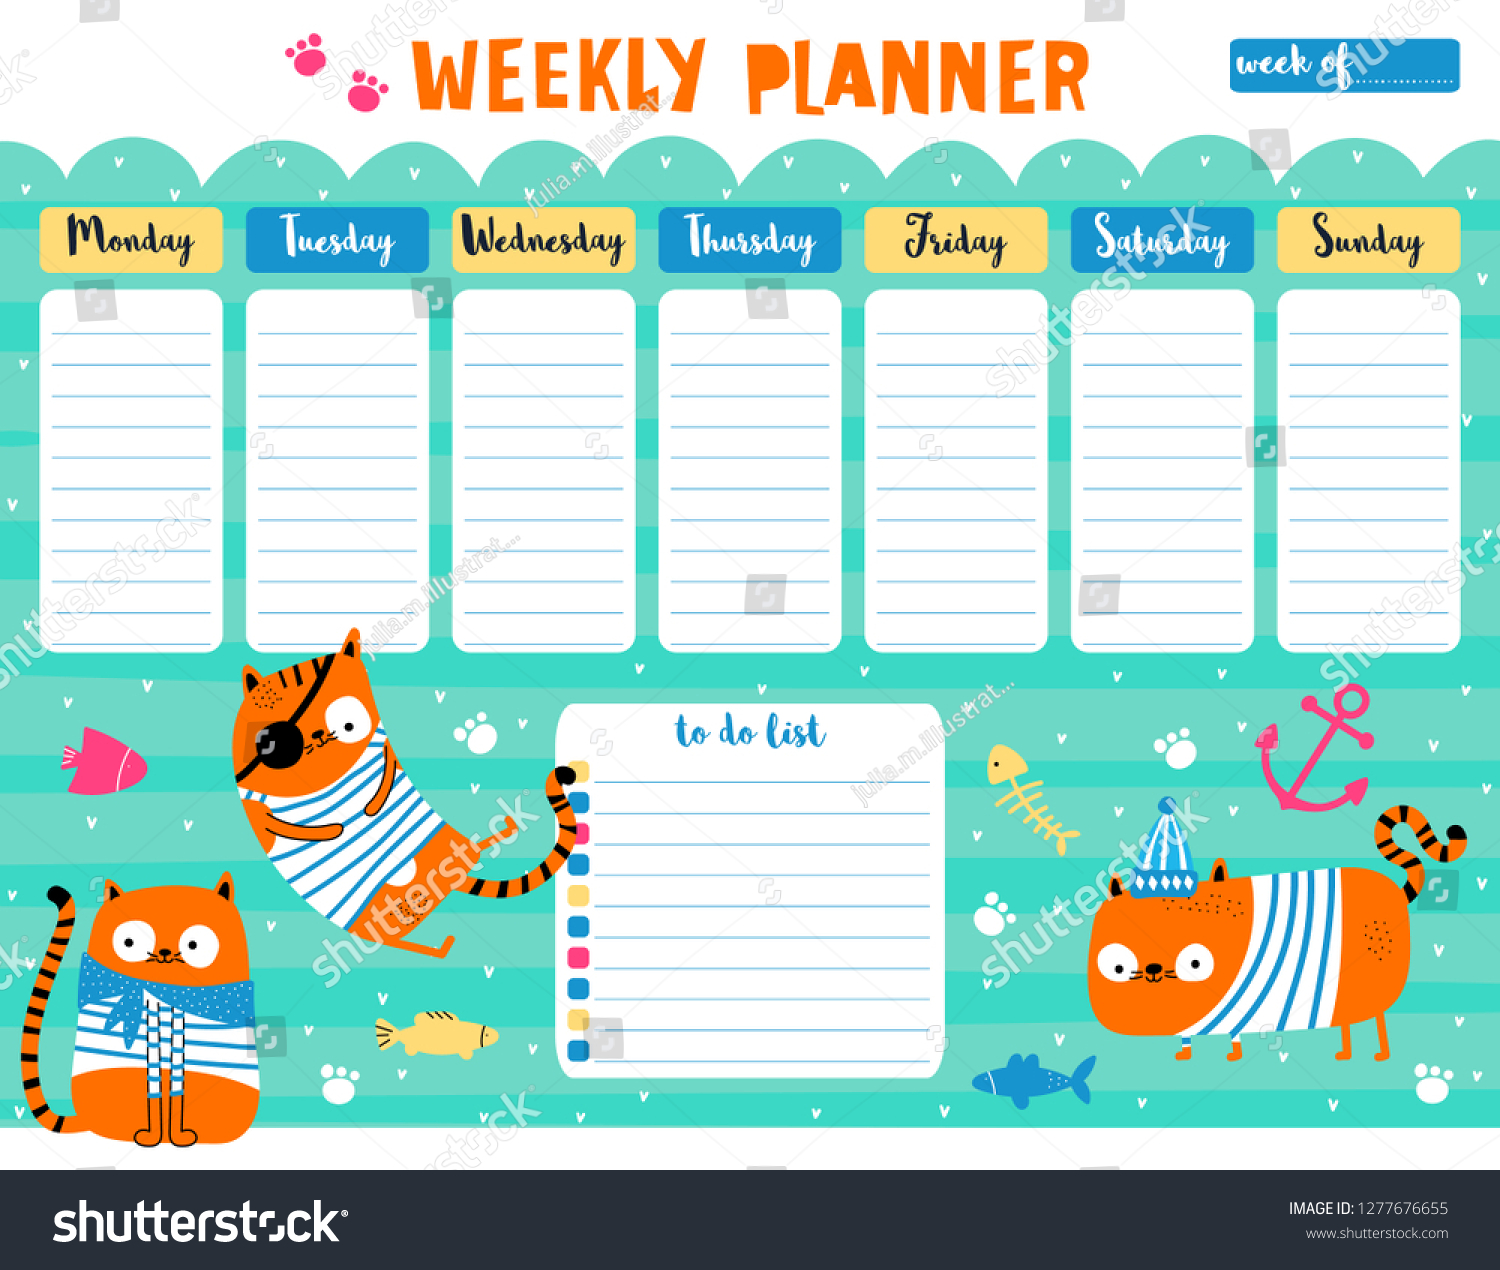 Kids Weekly Planner Do List Cute Stock Vector (Royalty Free